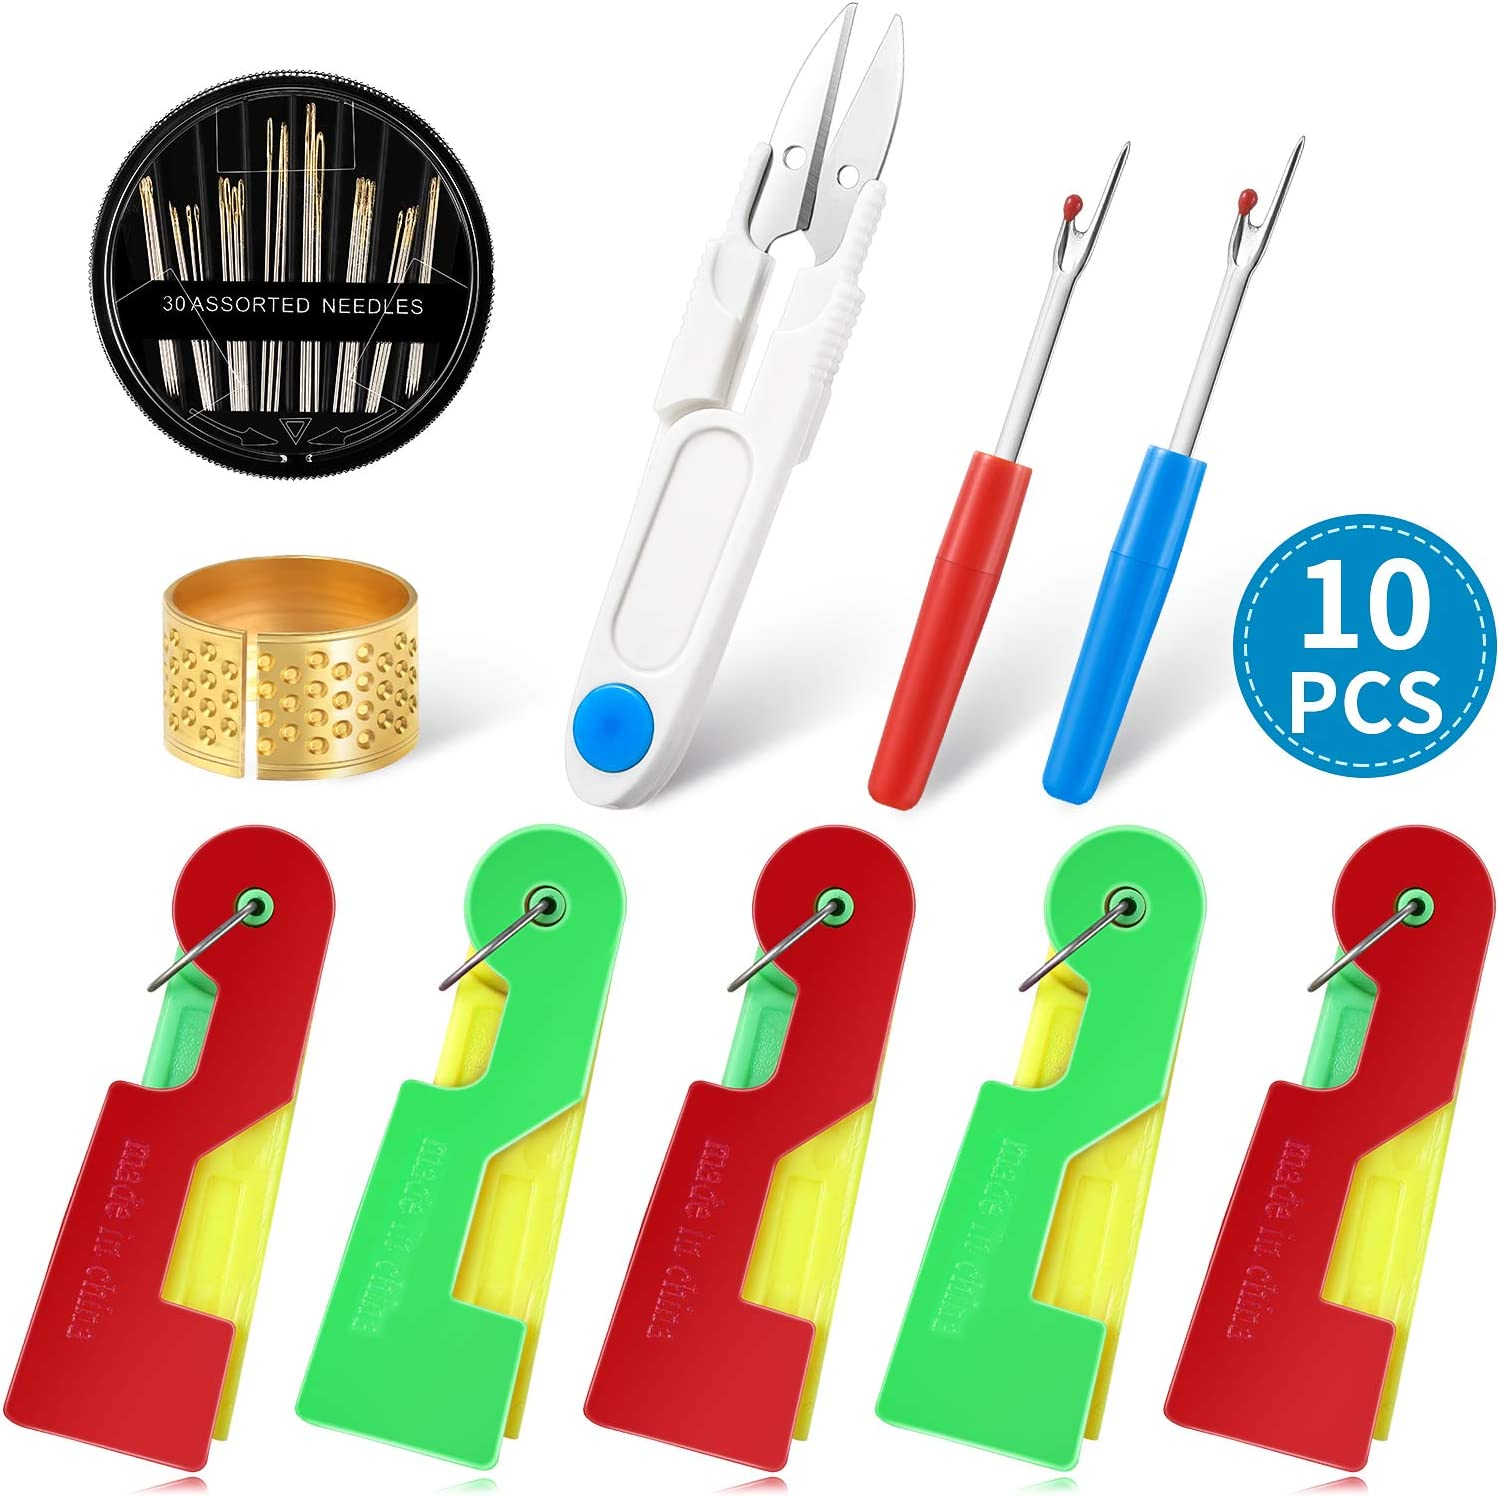 10 Pieces Hand Sewing Needle Threader 3 Pieces Sewing Thimble and 30 Pieces Assorted Needles for Daily Sewing Problem 6 Pieces Automatic Threaders Needle Threader Sewing Set 2 Pieces Seam Rippers